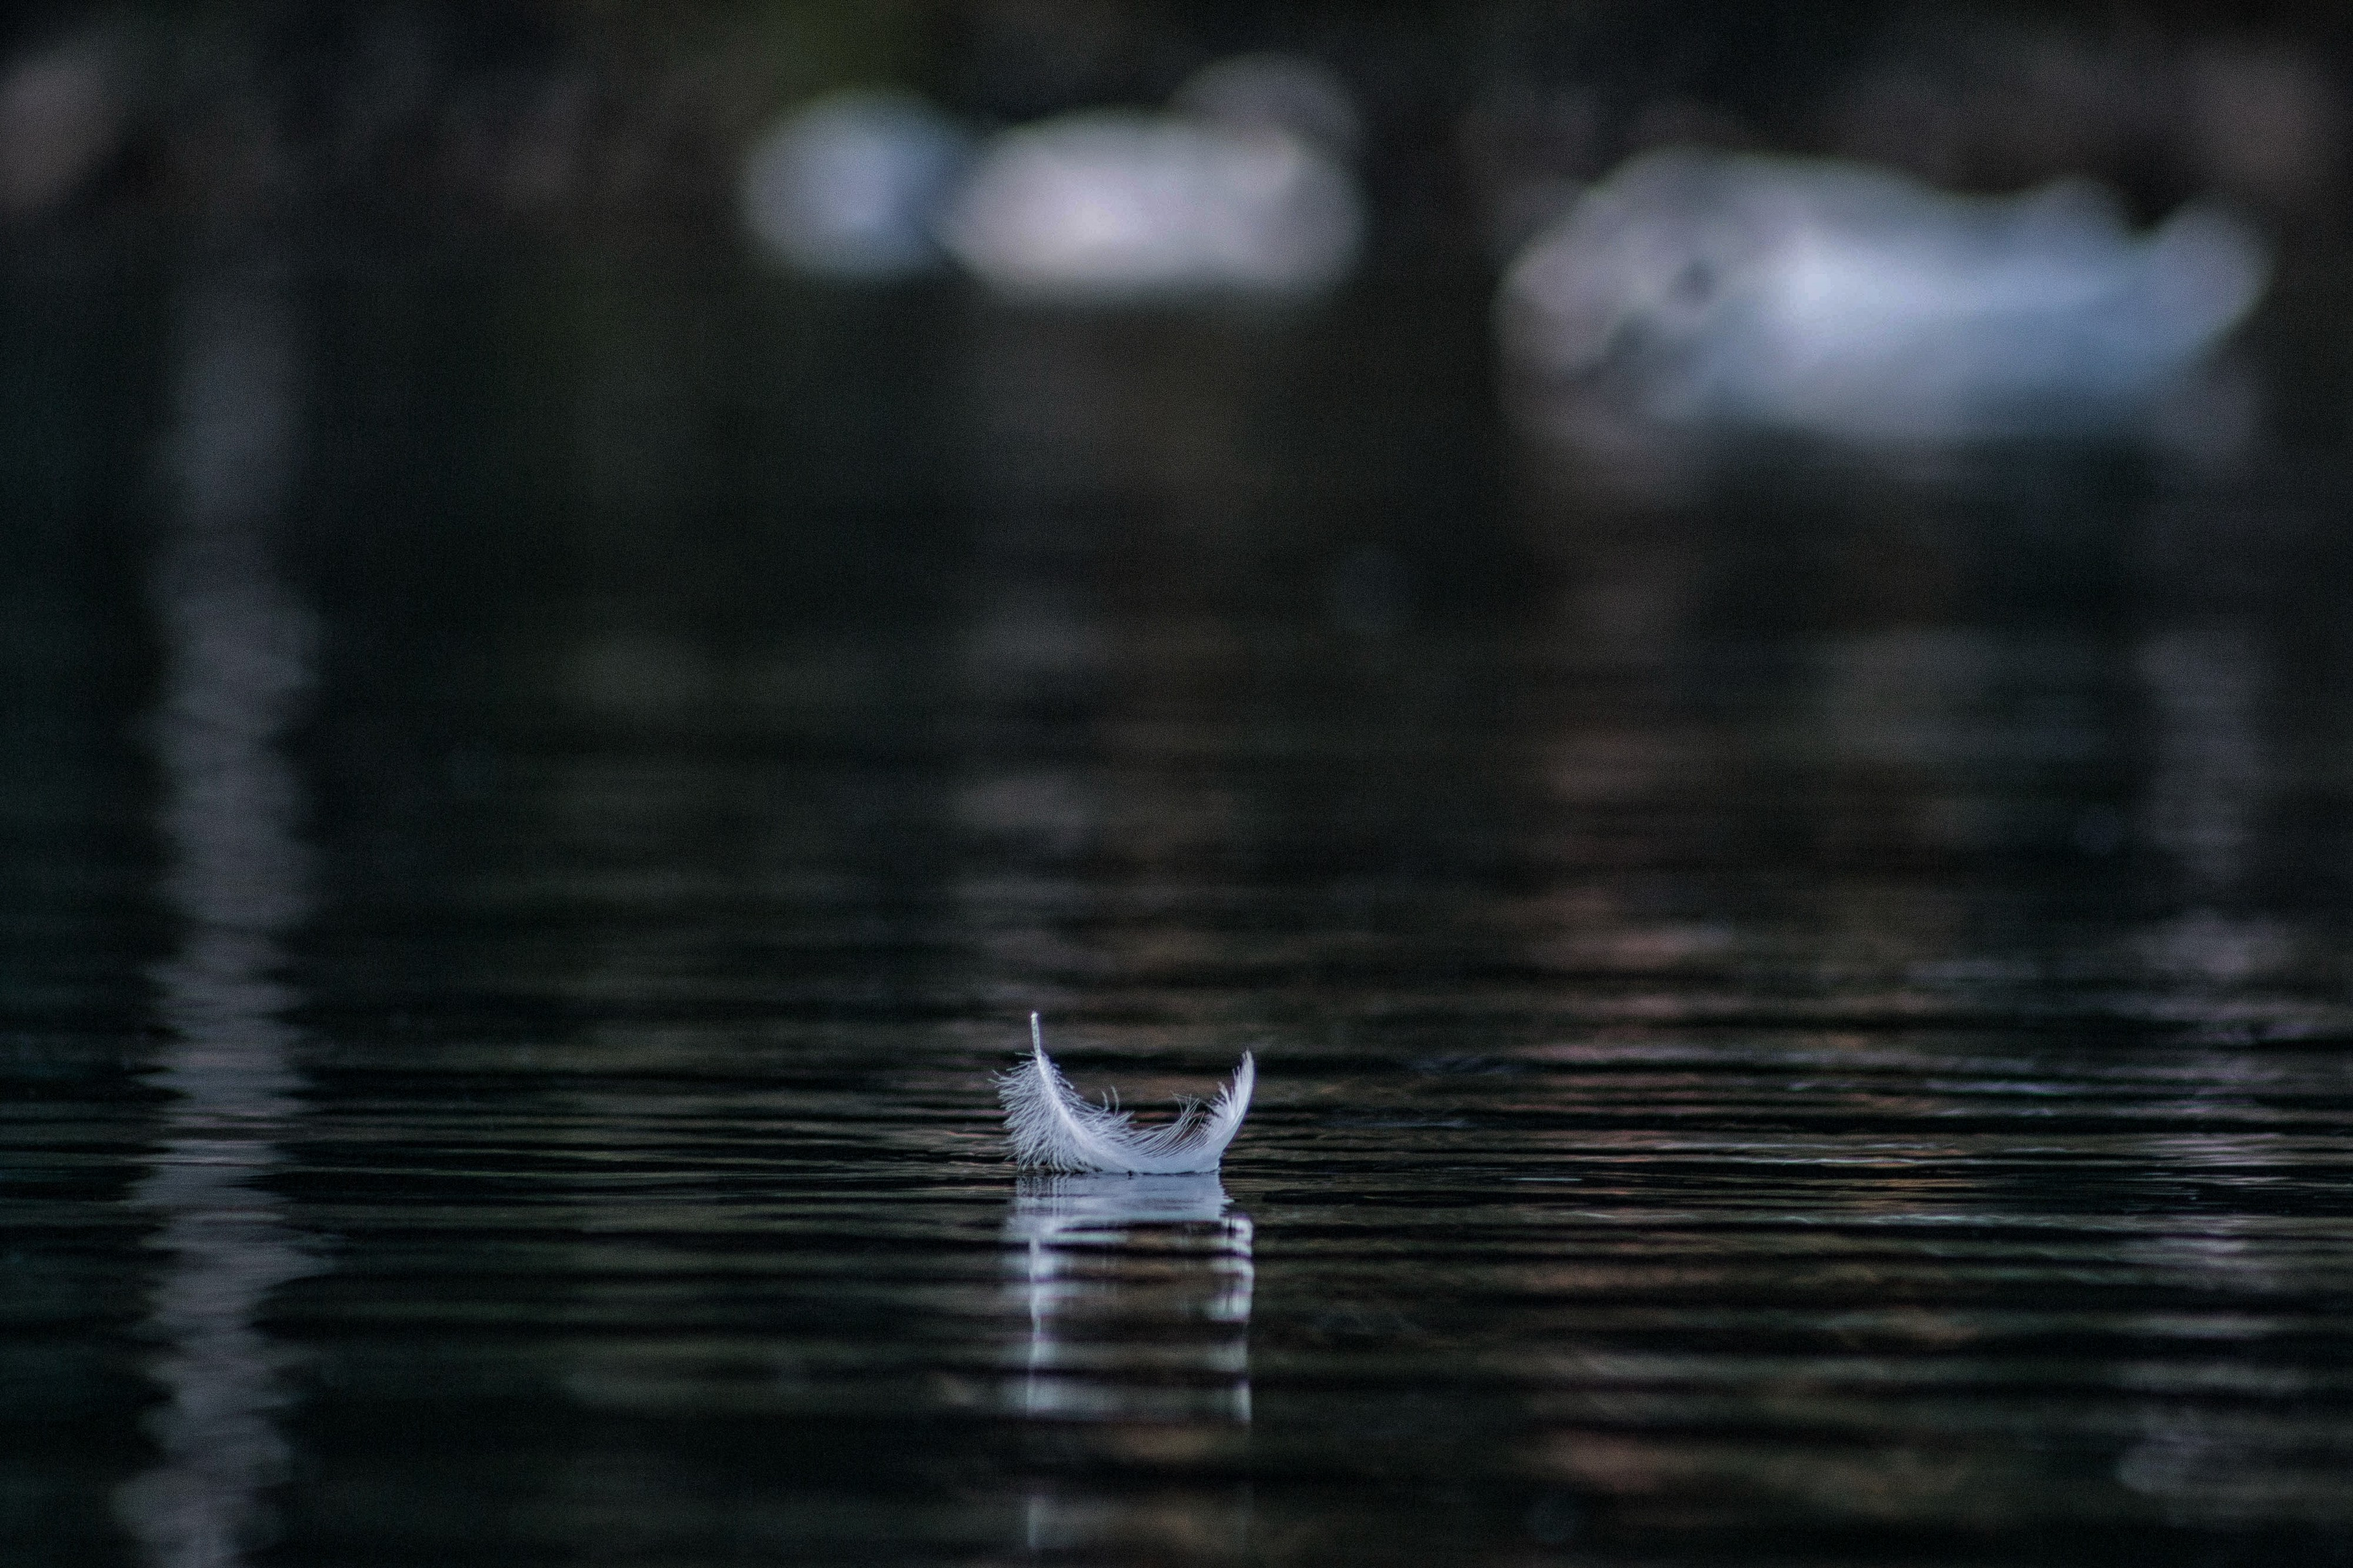 A white feather floating on some black water, with white swans in the background